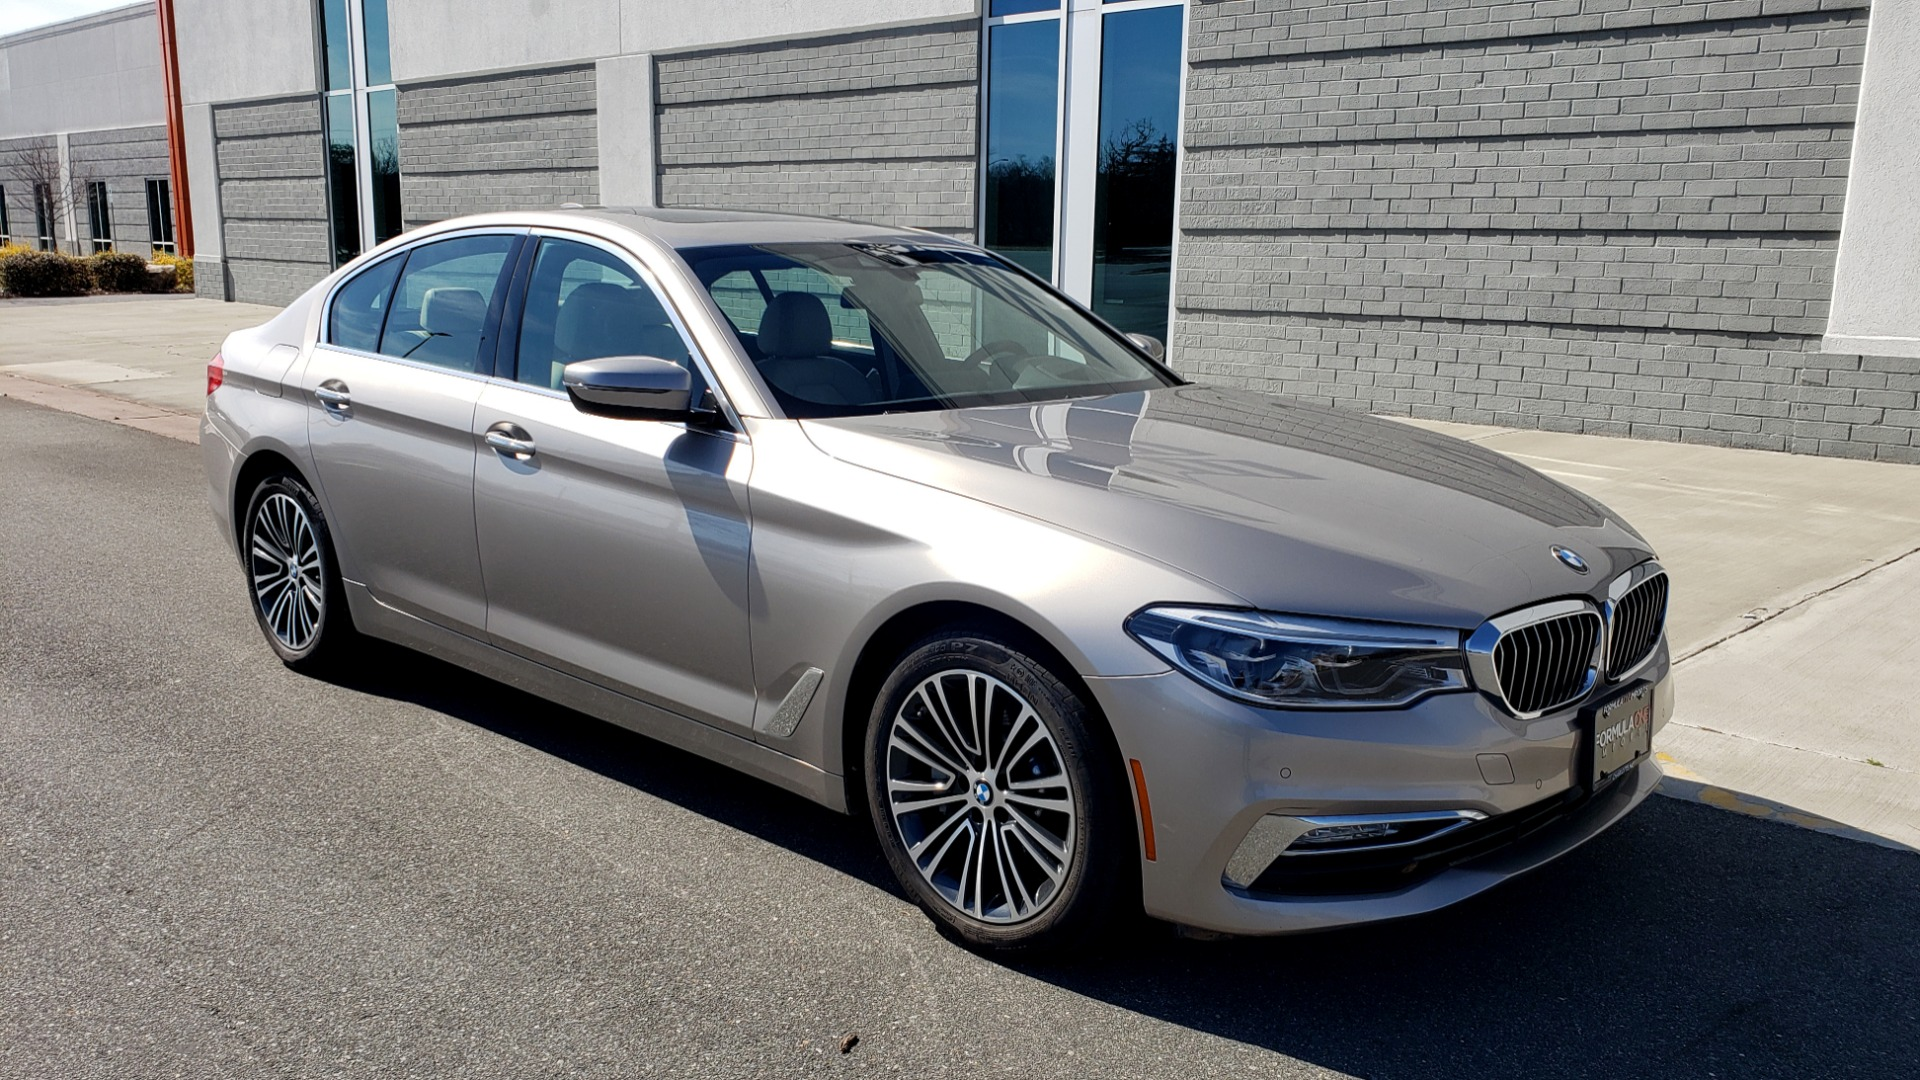 Used 2018 BMW 5 SERIES 540IXDRIVE PREMIUM / DRVR ASST PLUS / LUX PKG / APPLE CARPLAY for sale Sold at Formula Imports in Charlotte NC 28227 5